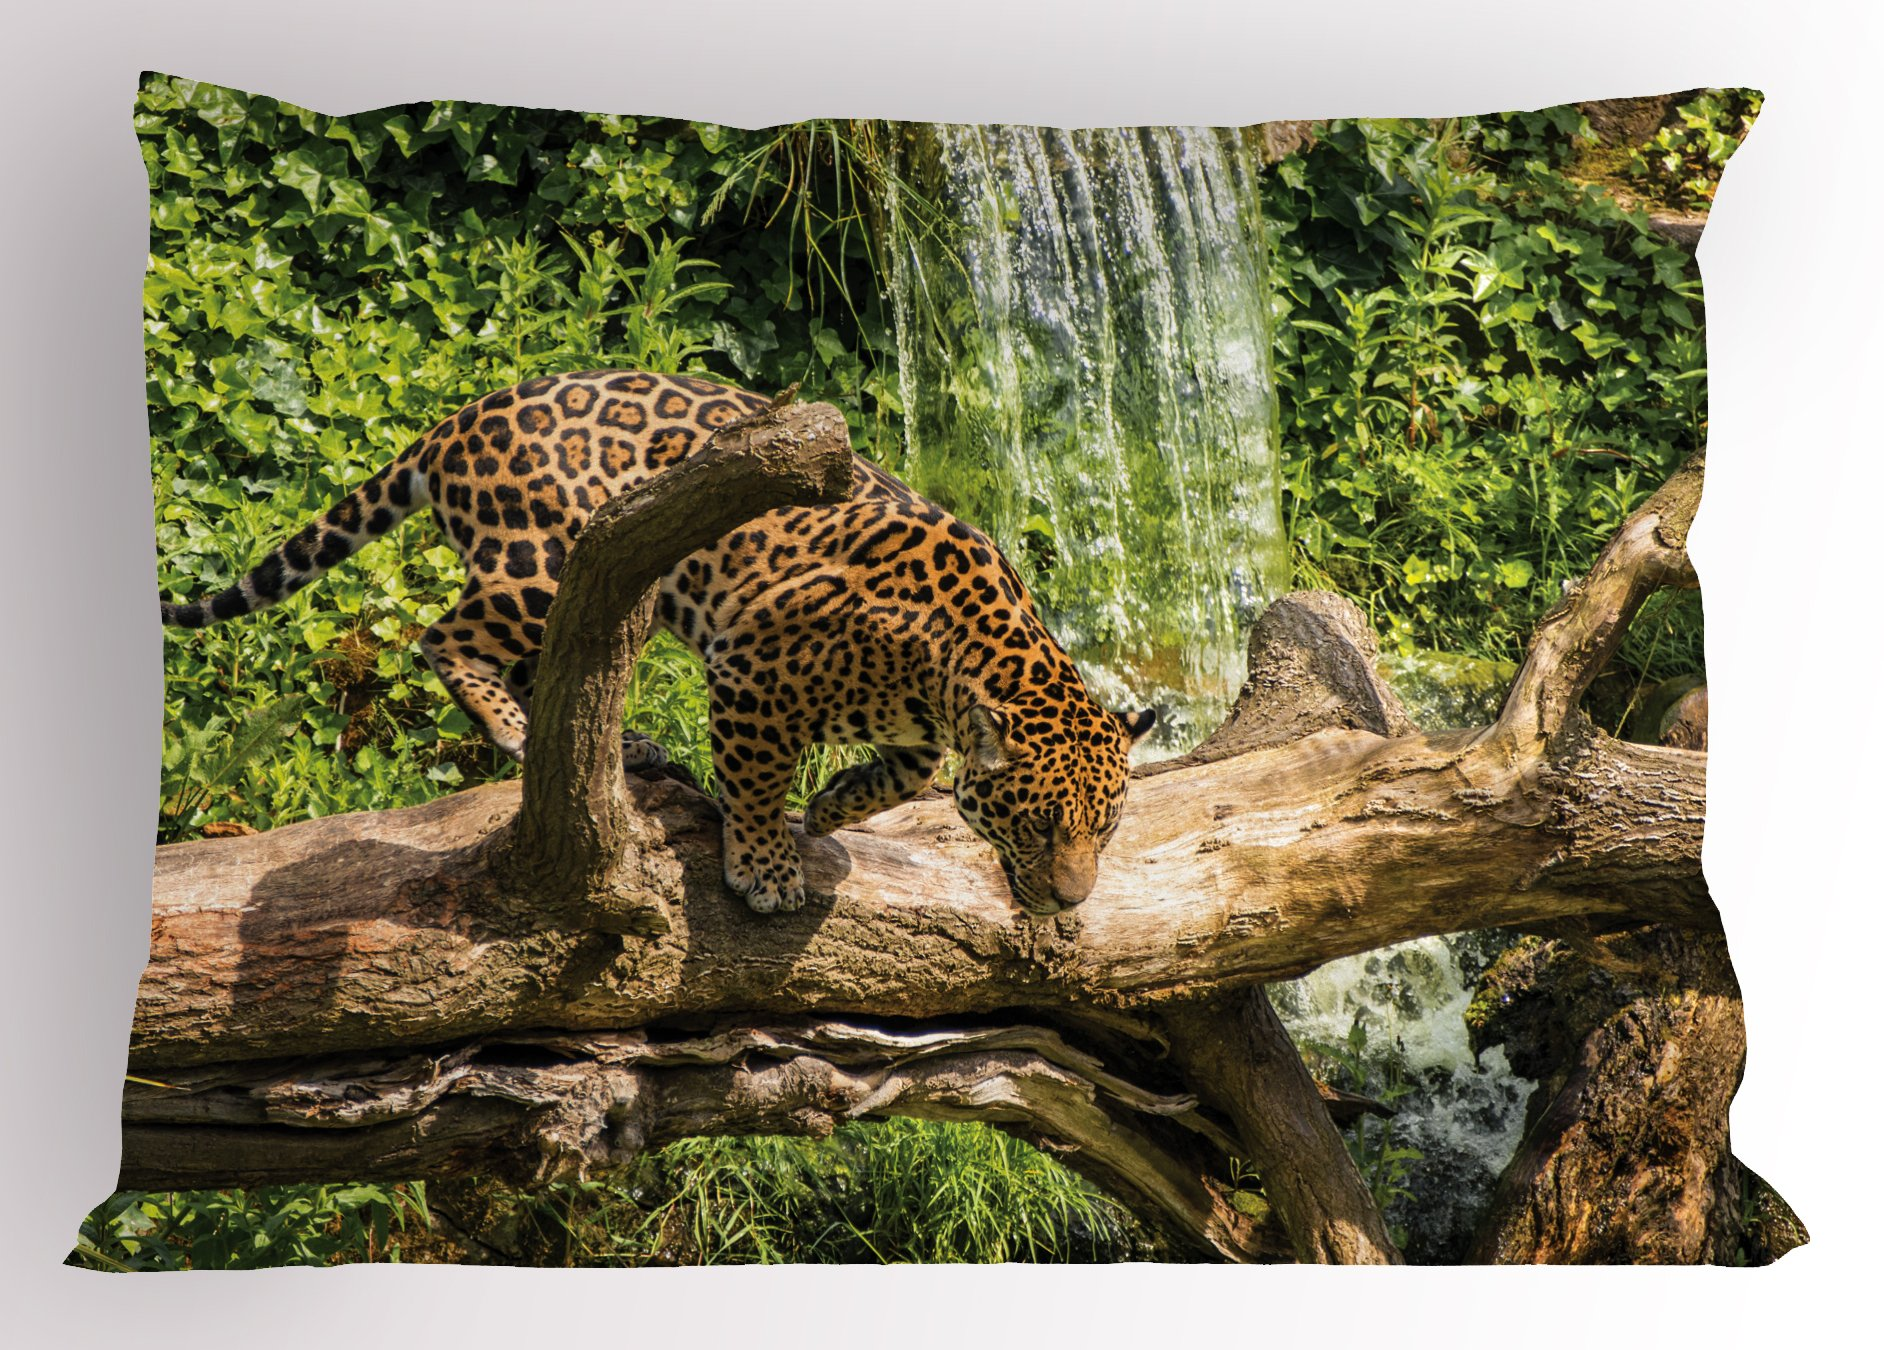 Ambesonne Safari Pillow Sham, Jaguar Cat on Tree Trunk Waterfall Endangered Species Wild Life Fast Animal, Decorative Standard Size Printed Pillowcase, 26 X 20 inches, Green Light Brown